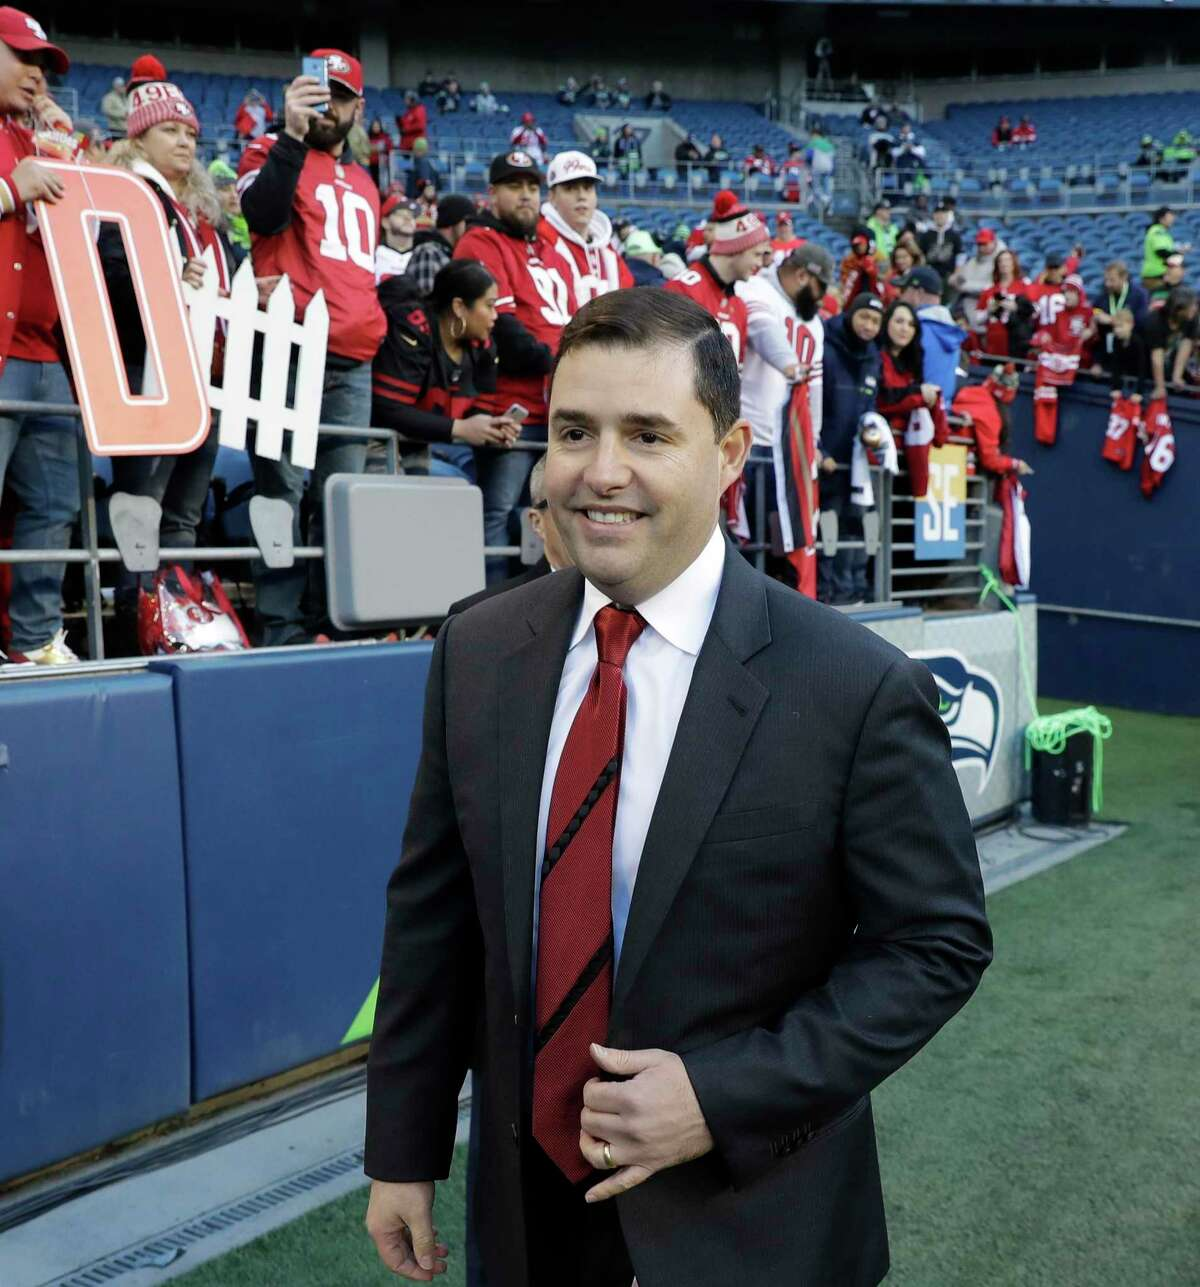 San Francisco 49ers team owner Jed York walks on the field before an NFL football game against the Seattle Seahawks, Sunday, Dec. 29, 2019, in Seattle. (AP Photo/Ted S. Warren)